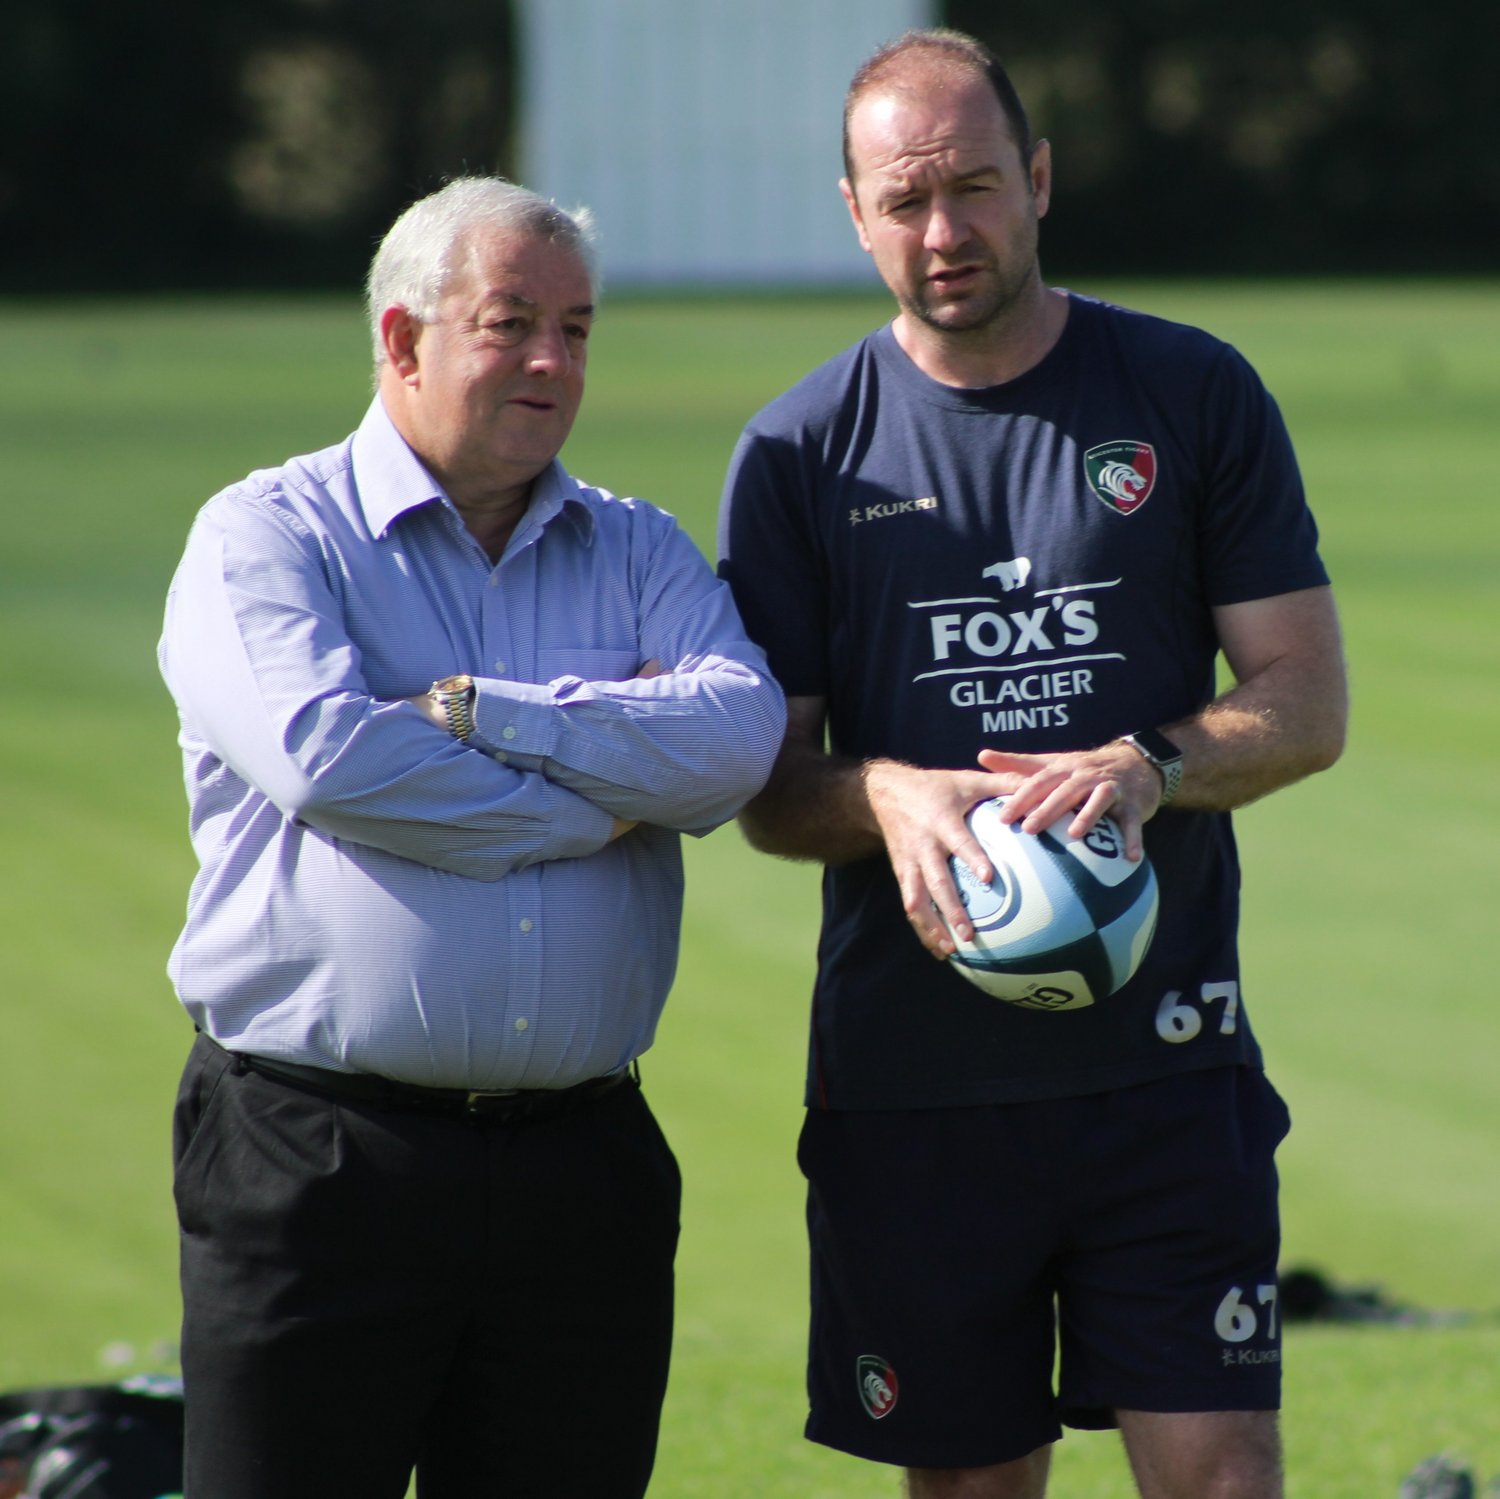 Leicester Tigers CEO Simon Cohen and Director of Rugby Geordan Murphy